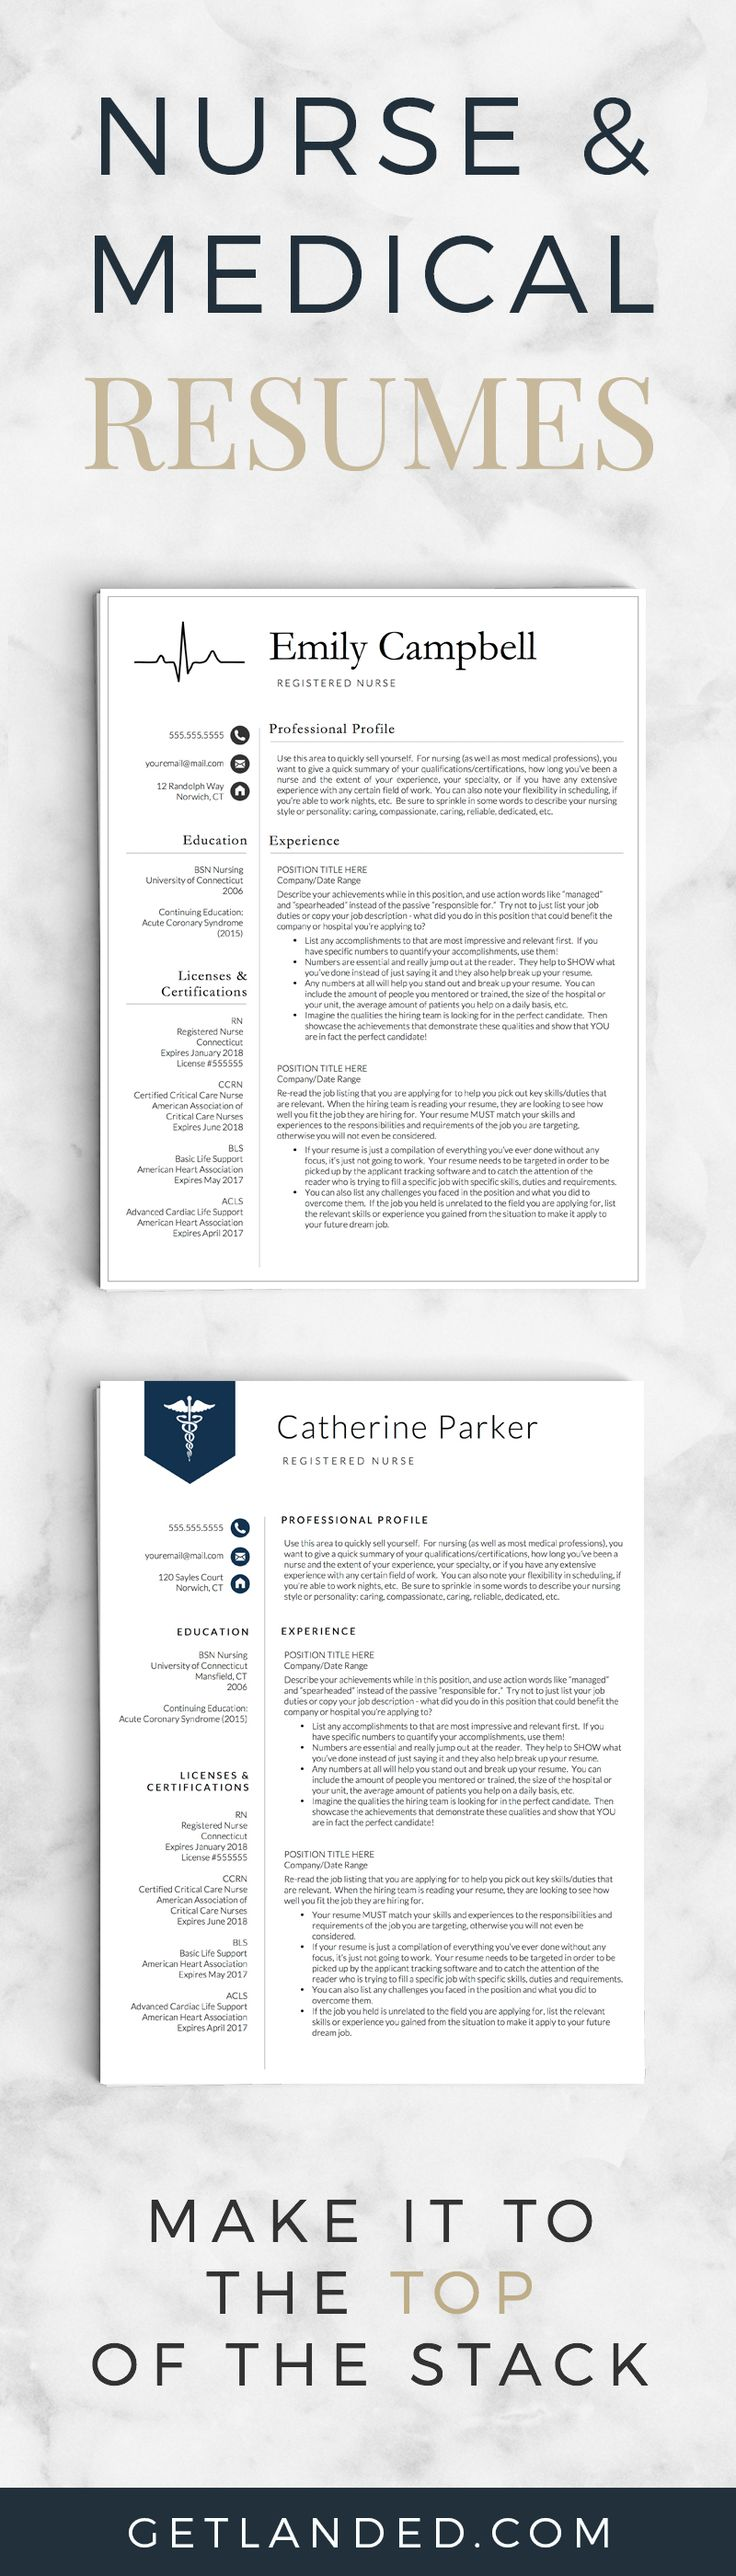 best ideas about nursing resume rn resume nurse resume templates medical resumes resume templates specifically designed for the nursing profession